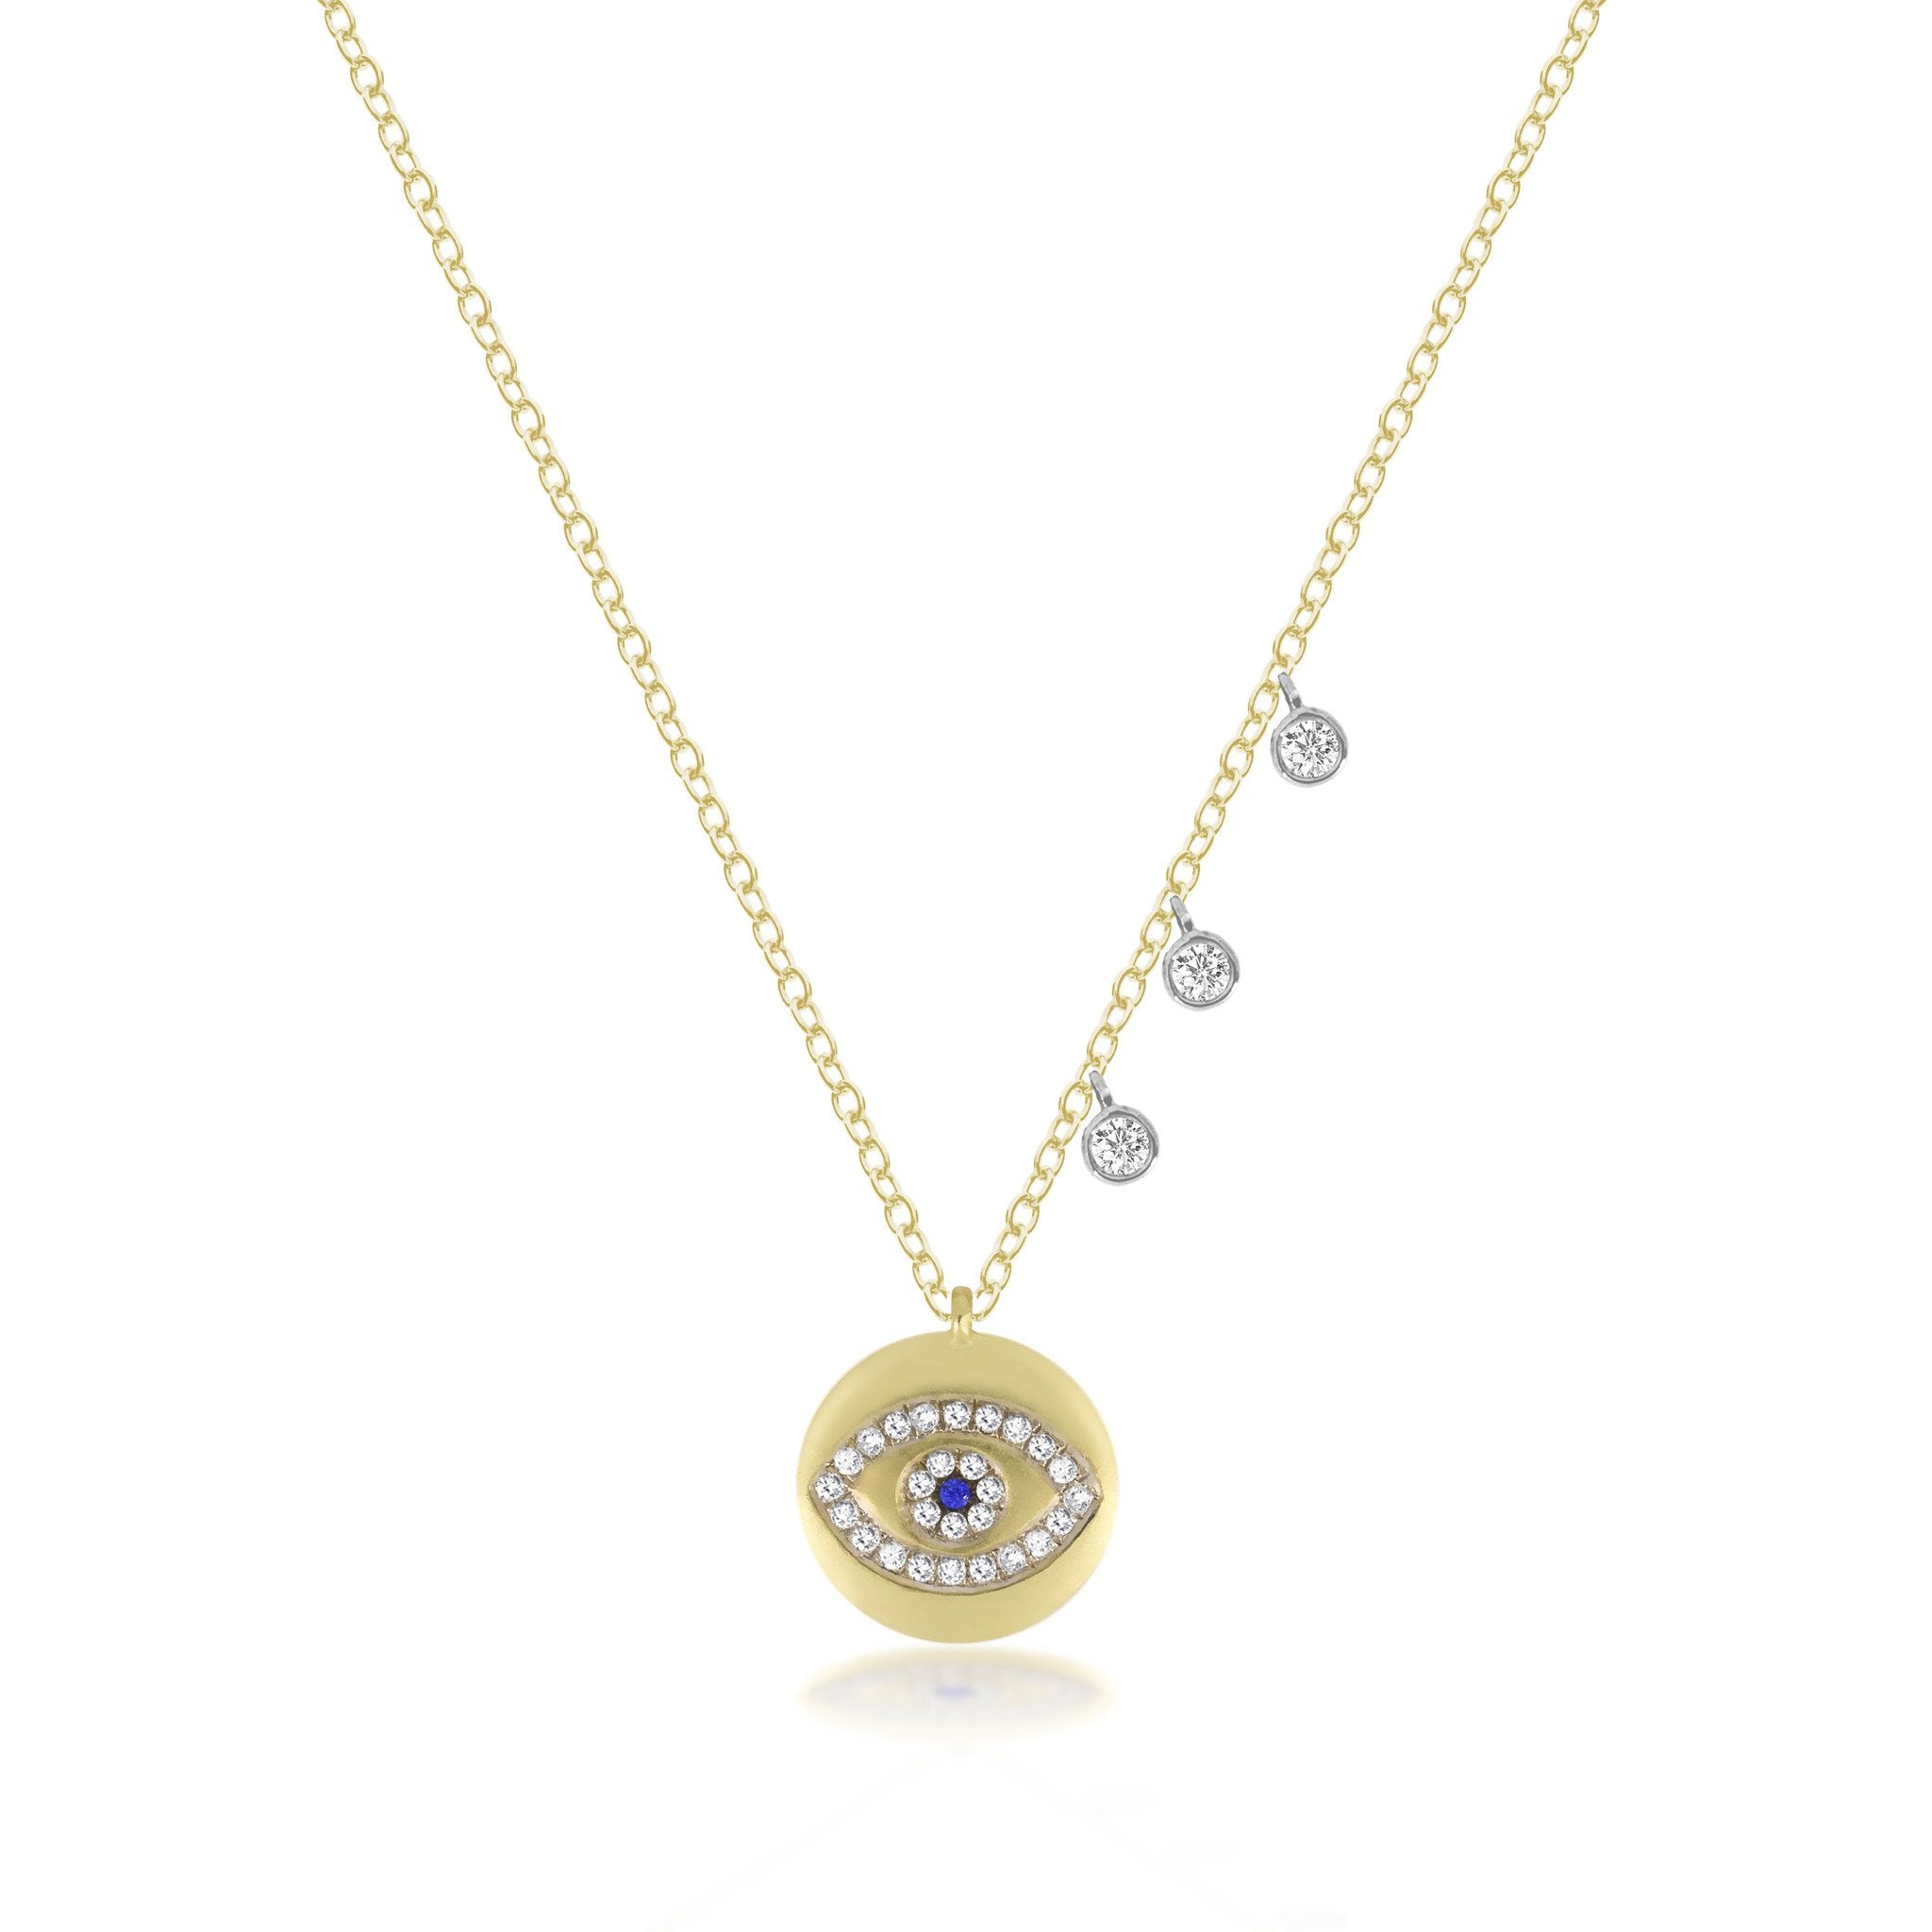 Meira T Evil Eye Yellow Gold Necklace with Diamonds 1N7521/YG